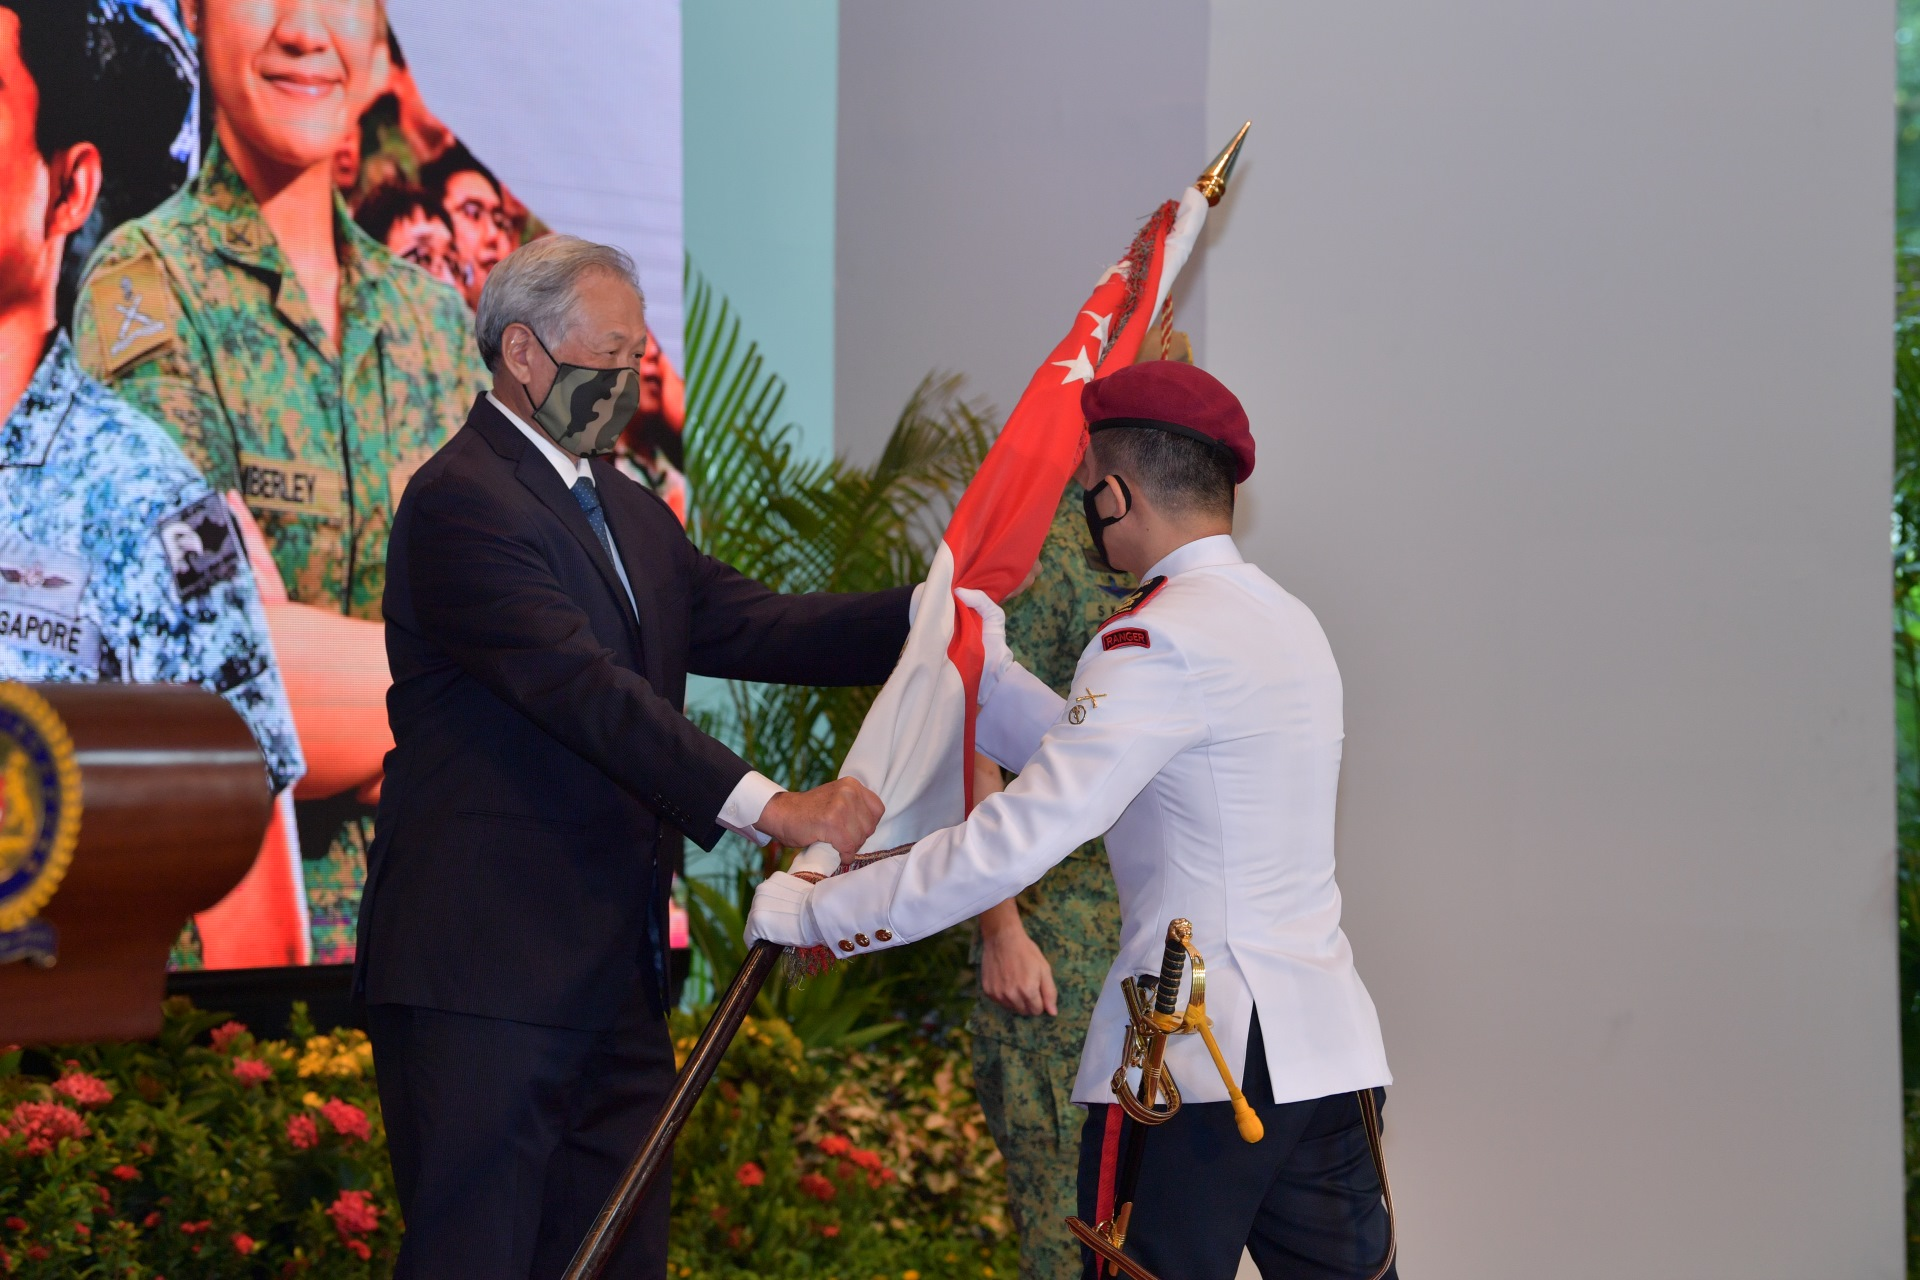 Dr Ng presenting the State Colours to Lieutenant-Colonel Fabian Pwi, Commanding Officer of the 1st Commando Battalion, which won the Best Combat Unit award this year.